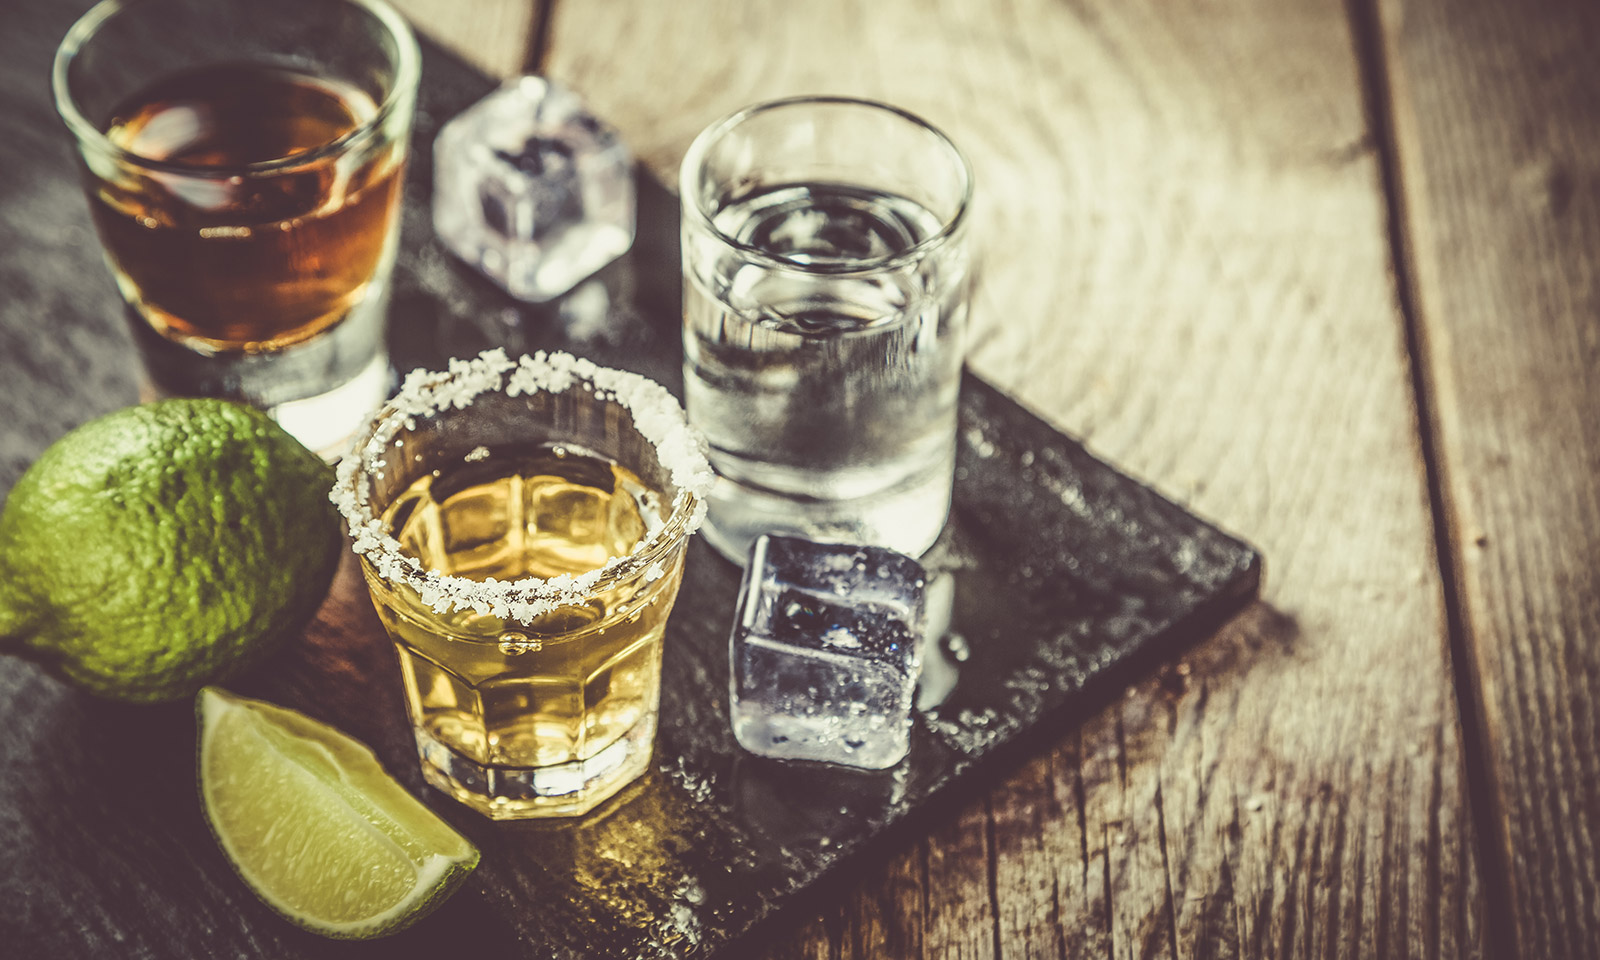 Several-ways-in-which-alcohol-can-halt-your-fitness-progress